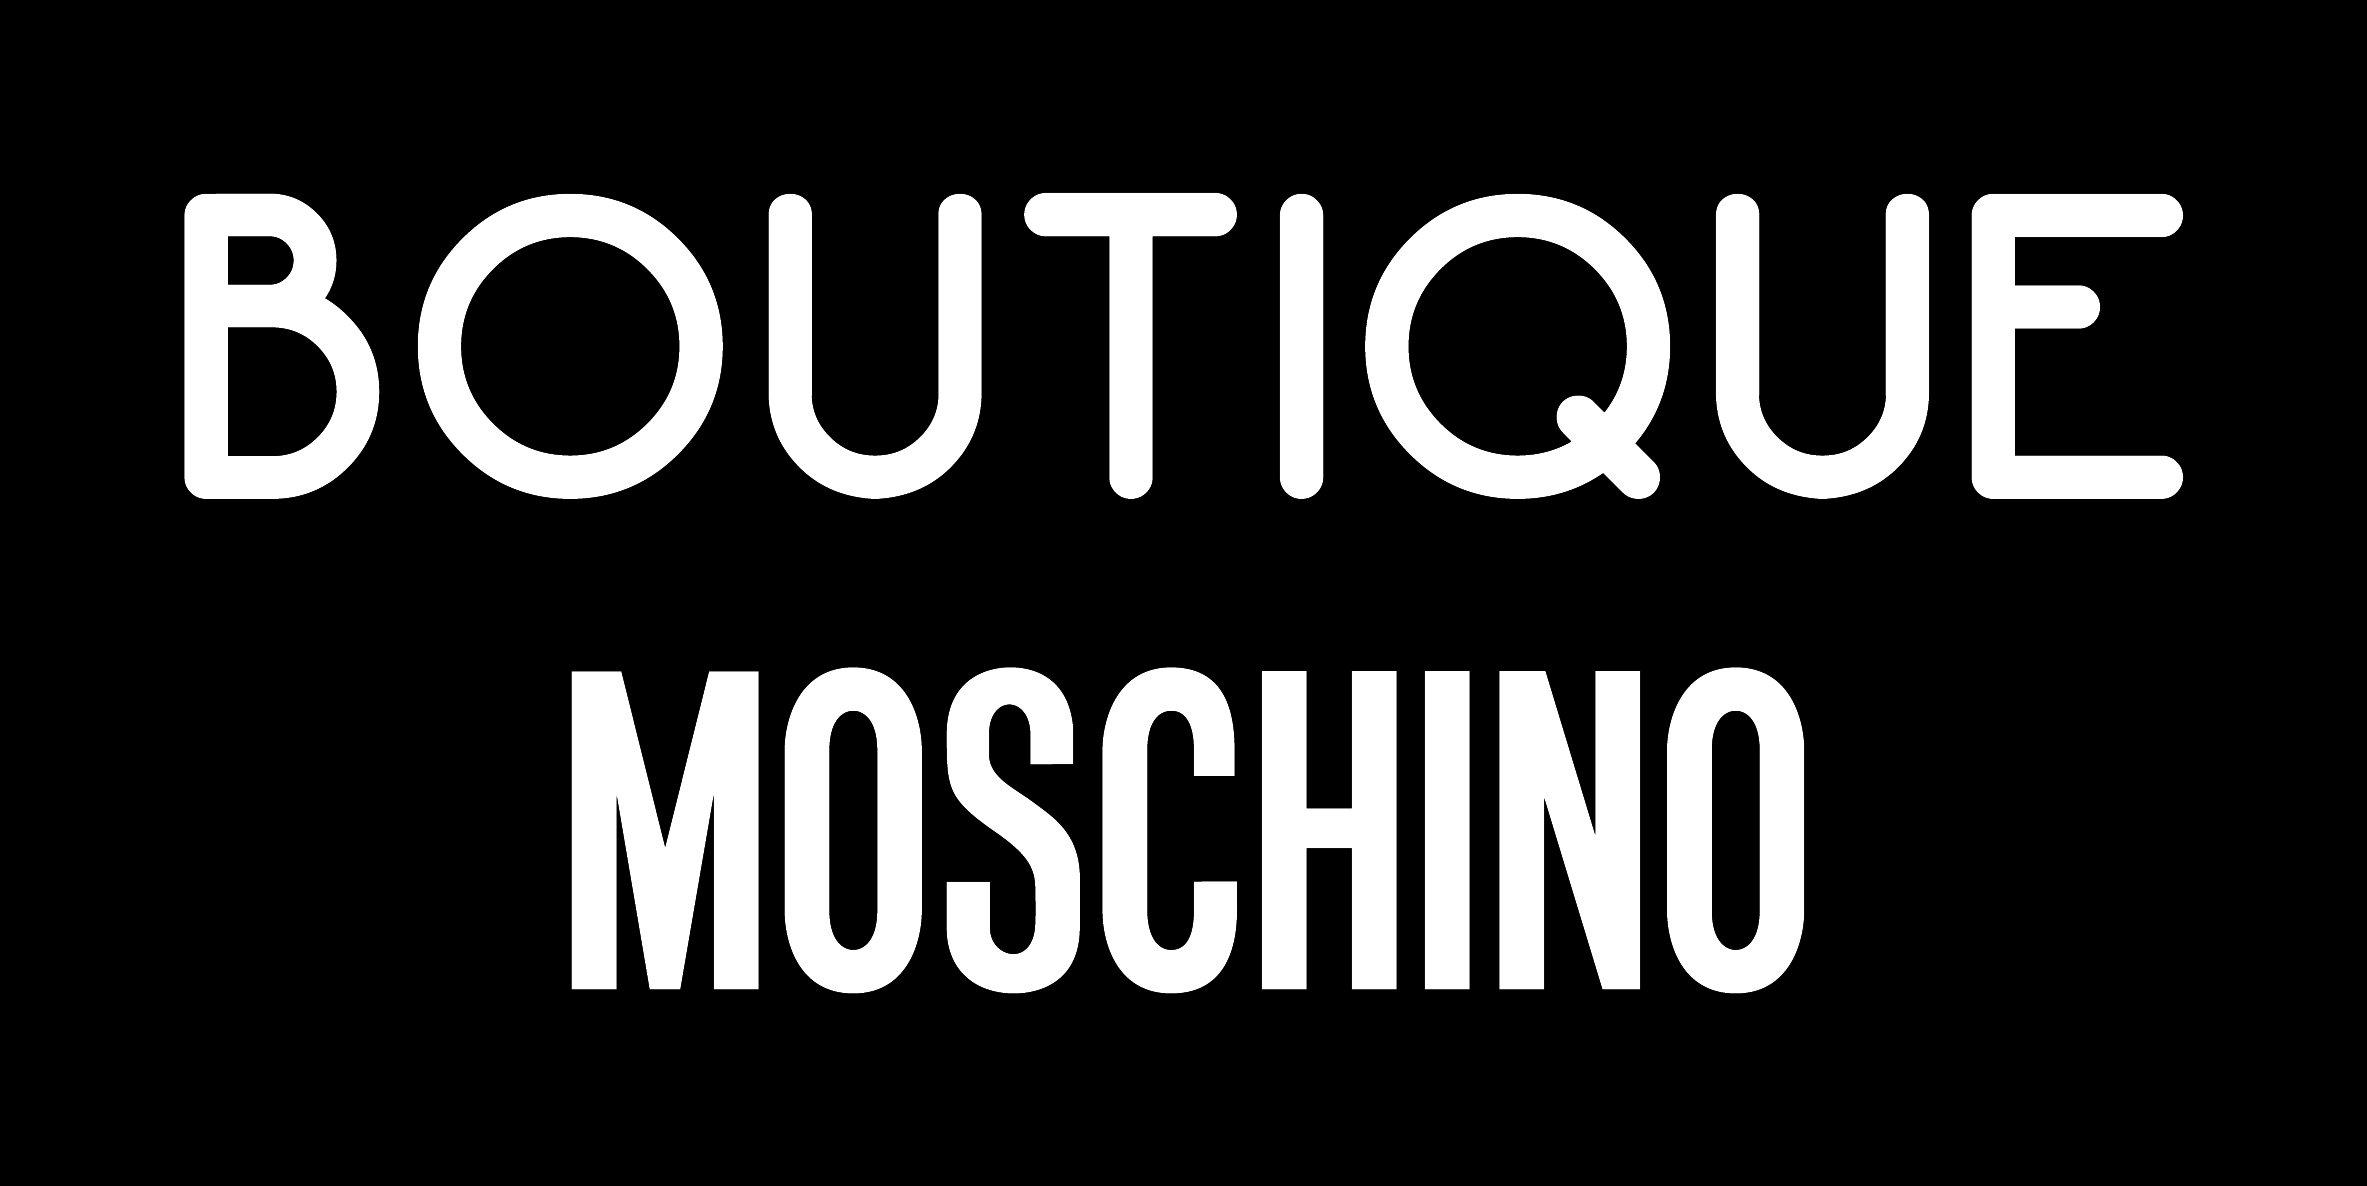 "{'liked': 0L, 'description': u""Moschino's playful sister label Boutique displays the same sense of fun as the main line. Expect brooches and ruffles on quirky tweed jackets, coquettish day dresses in uplifting palettes and tongue-i"", 'fcount': 5635, 'logo': u'https://d1lq6ohuxk085y.cloudfront.net/designer/boutique_moschino-1470103961', 'viewed': 6967L, 'category': u'c', 'name': u'BOUTIQUE MOSCHINO', 'url': 'BOUTIQUE-MOSCHINO', 'locname': u'BOUTIQUE MOSCHINO', 'mcount': 0, 'haswebsite': True}"